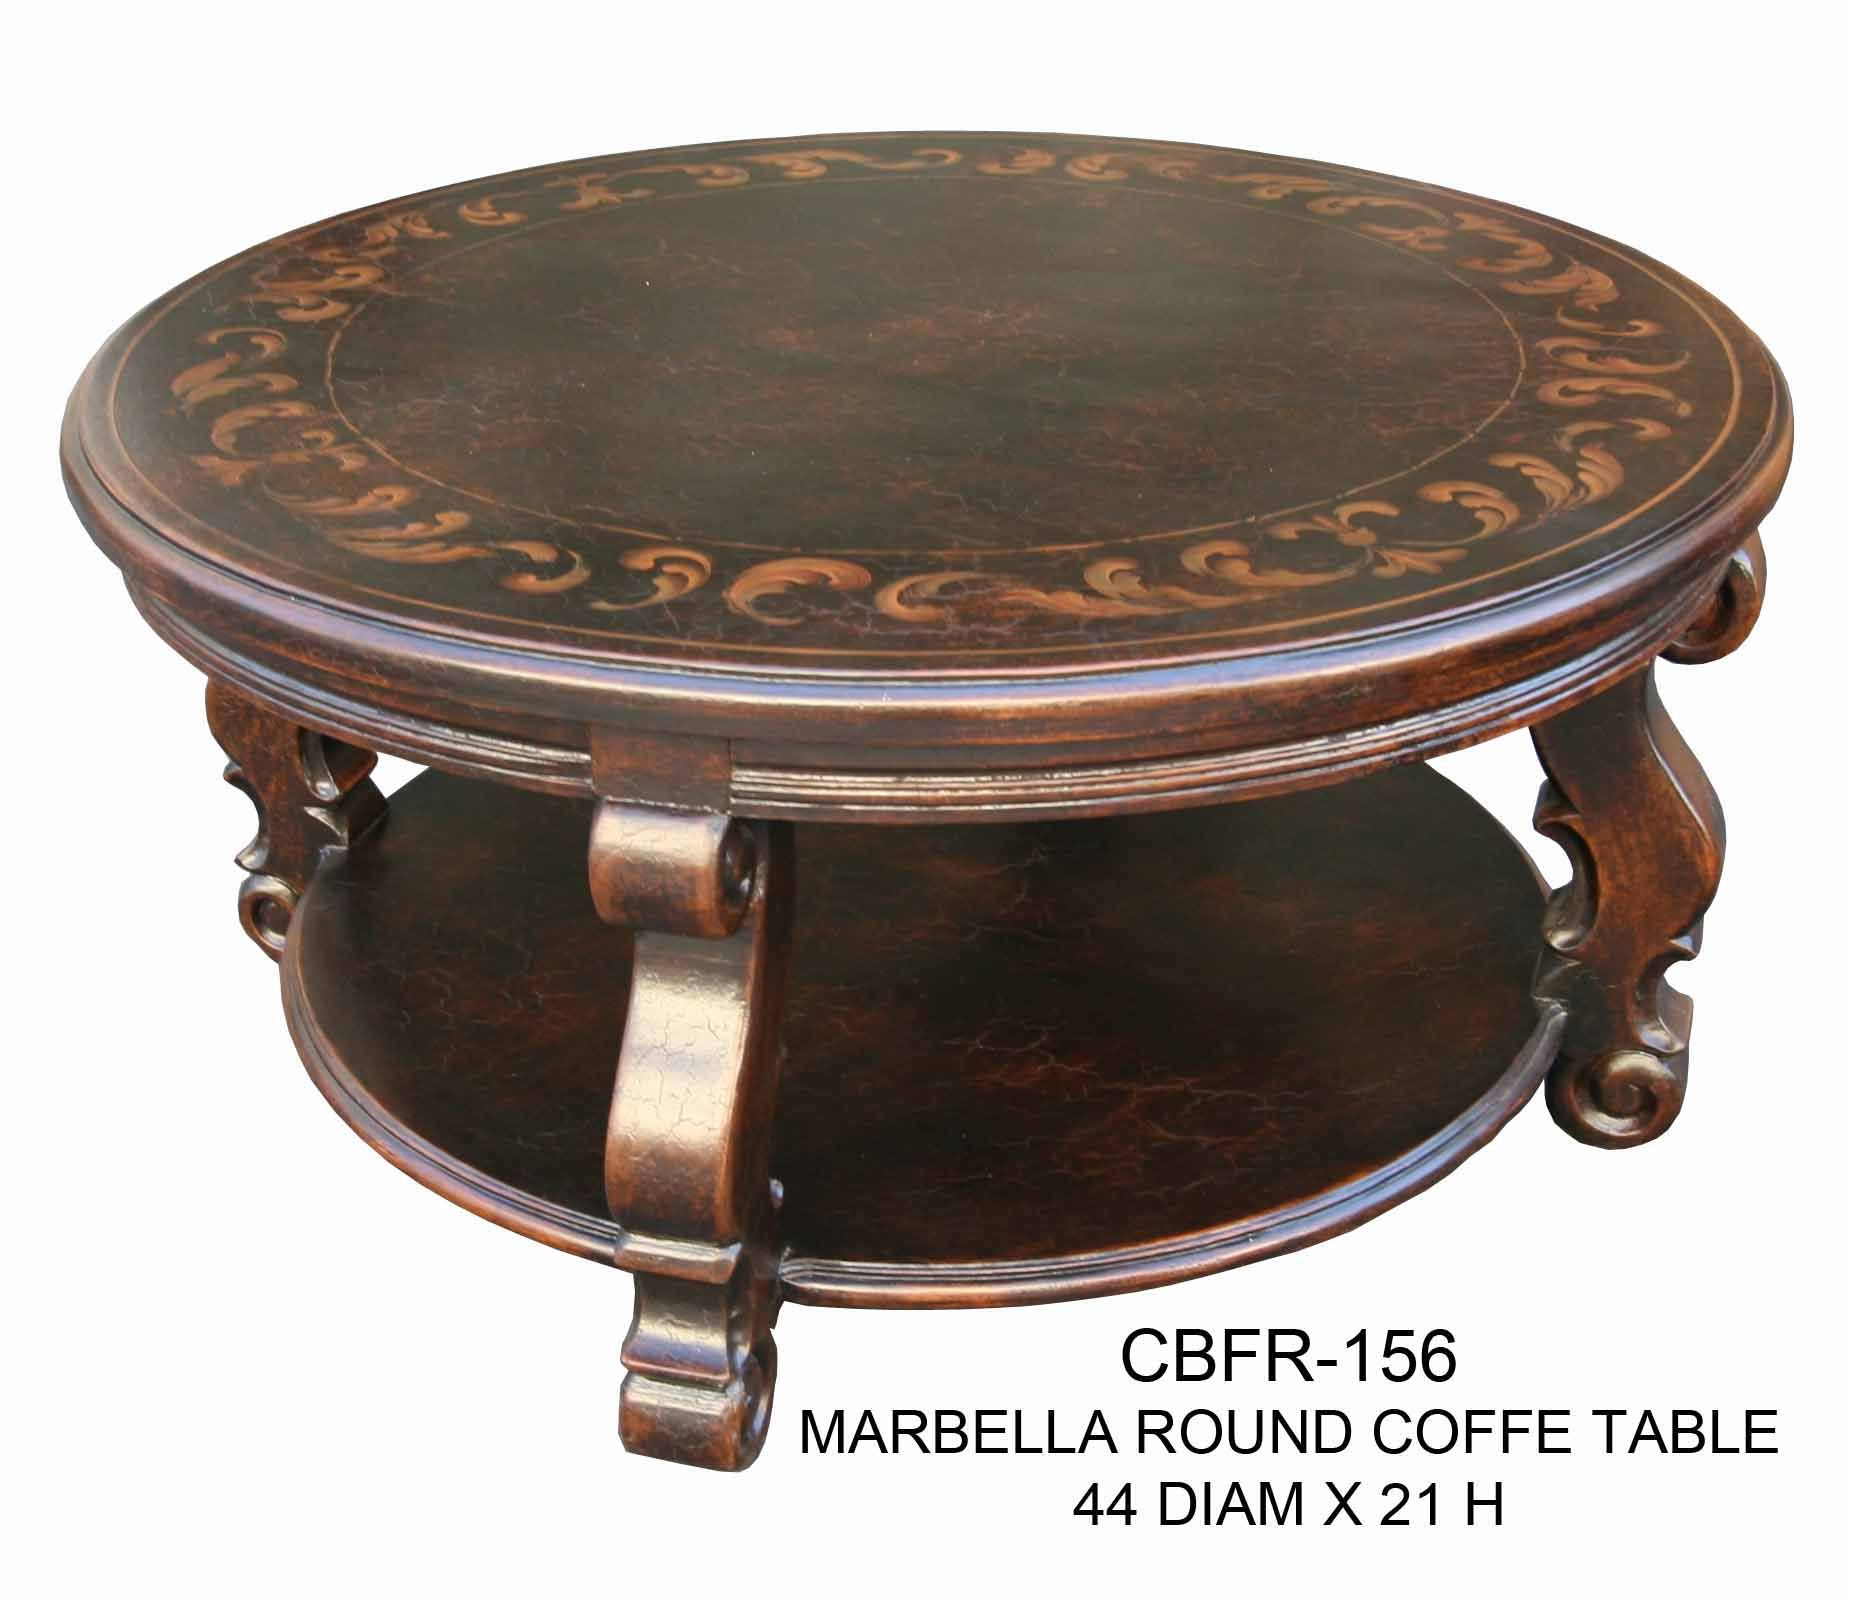 Marbella Round Coffee Table 44 Diam X 21 H Mediterranean Tuscan Style A Classic Elegant Handcrafted Coffee Table Elegant Coffee Table Coffee Table Vintage [ 1600 x 1850 Pixel ]